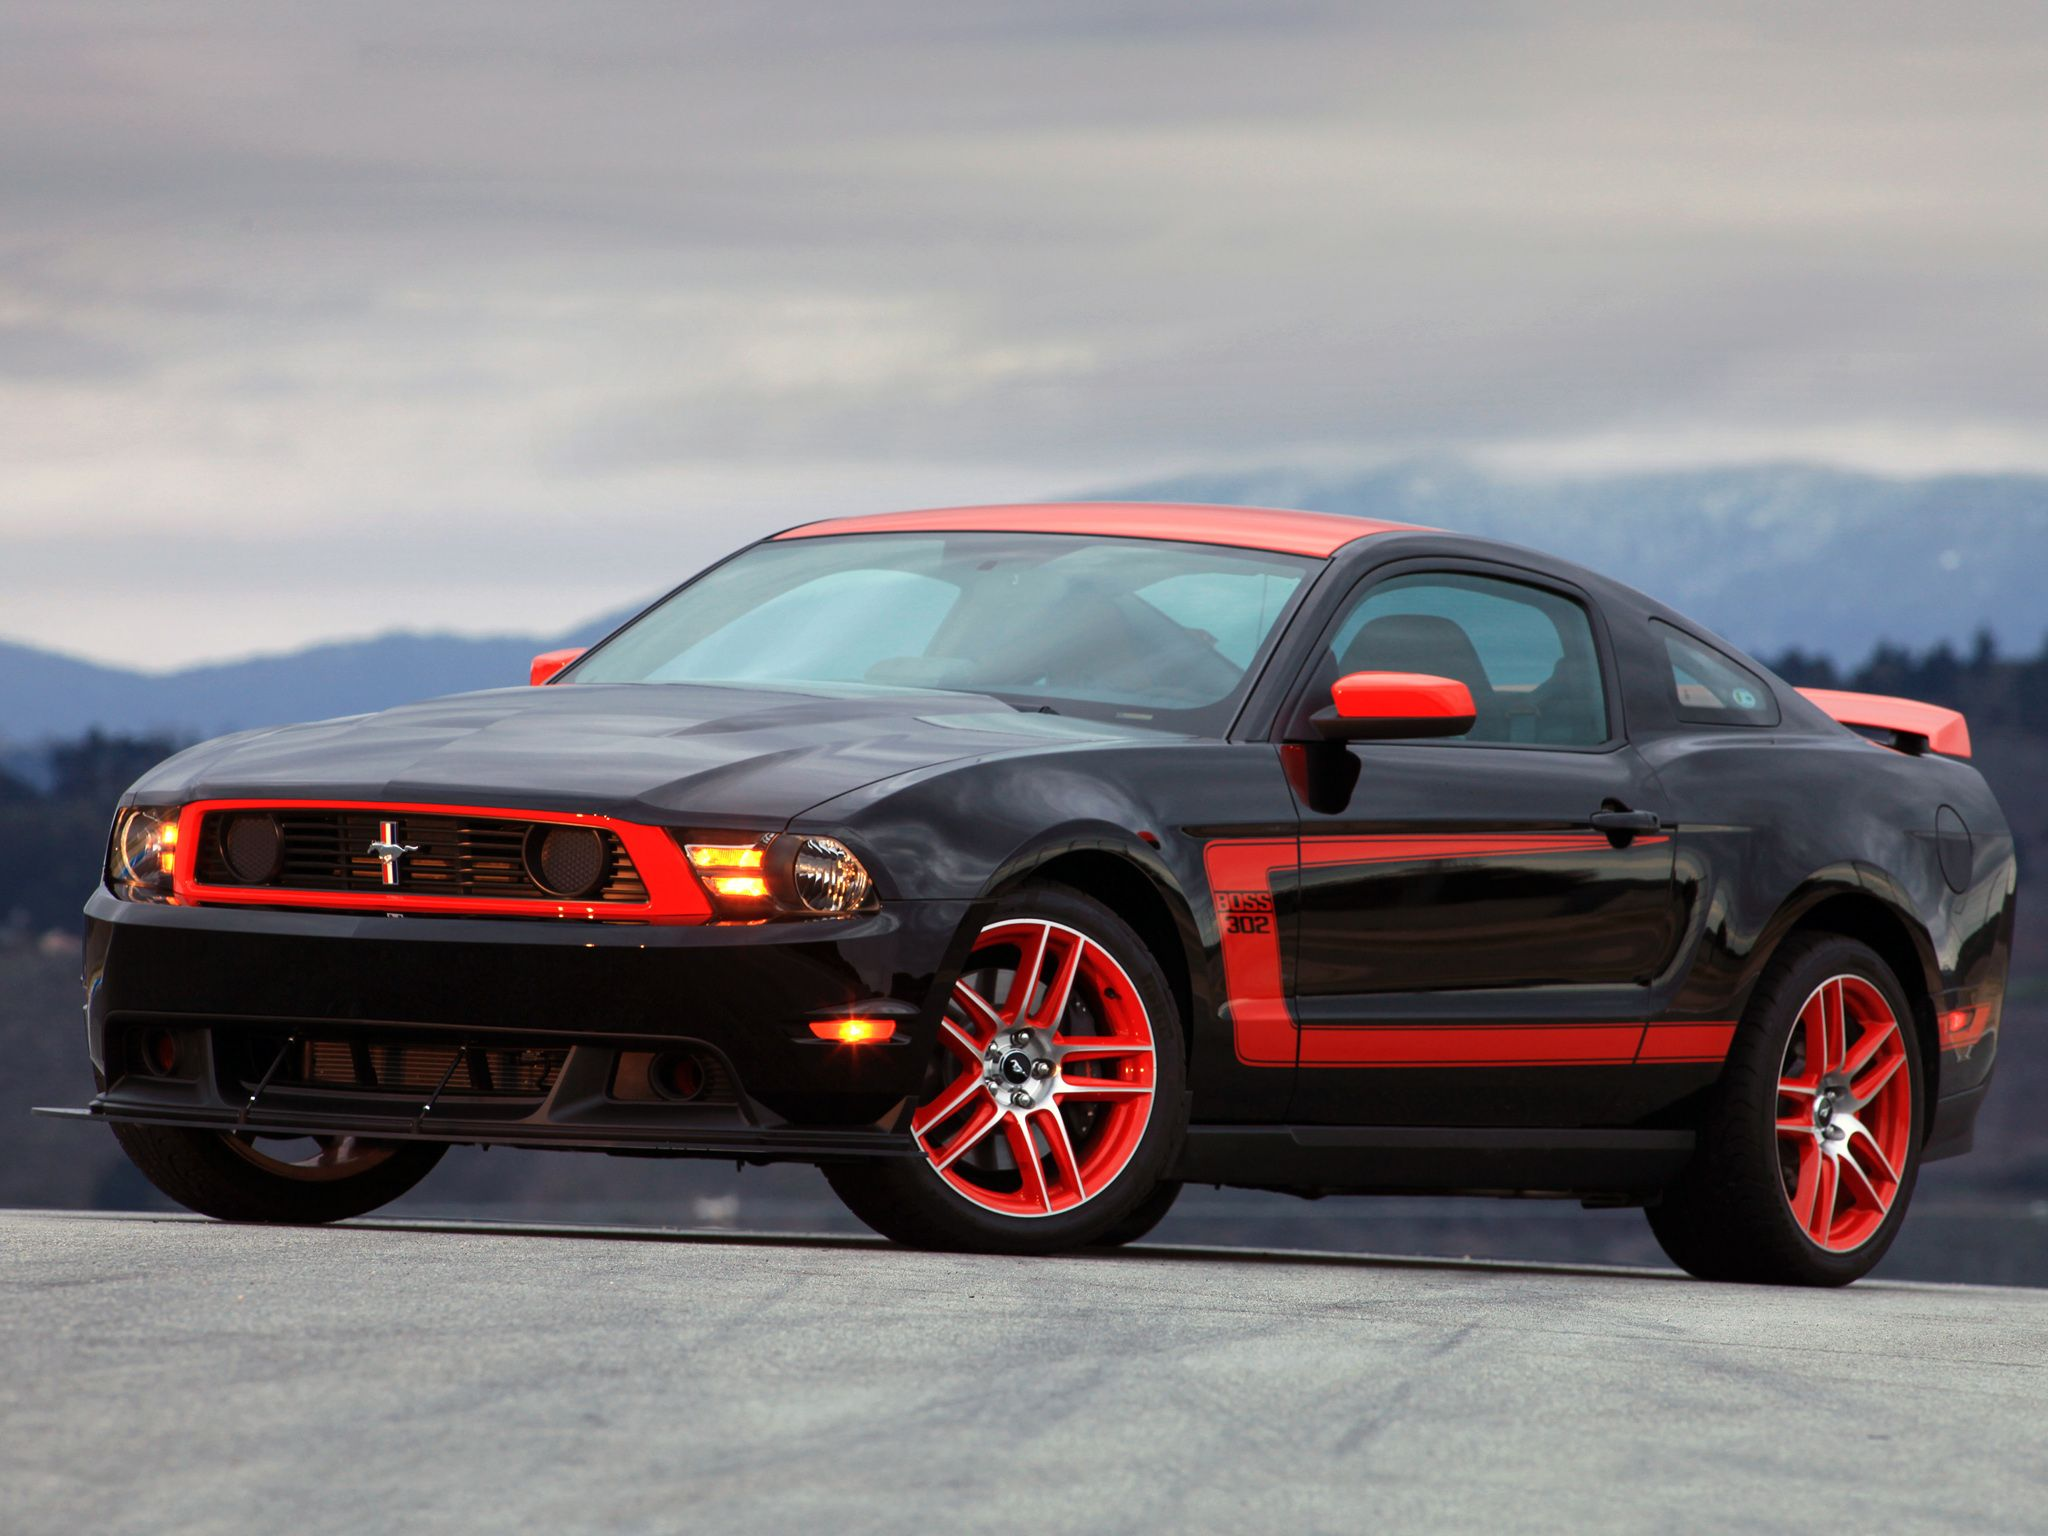 Ford Mustang Boss 302 Laguna Seca Motorcycles Cars And Other